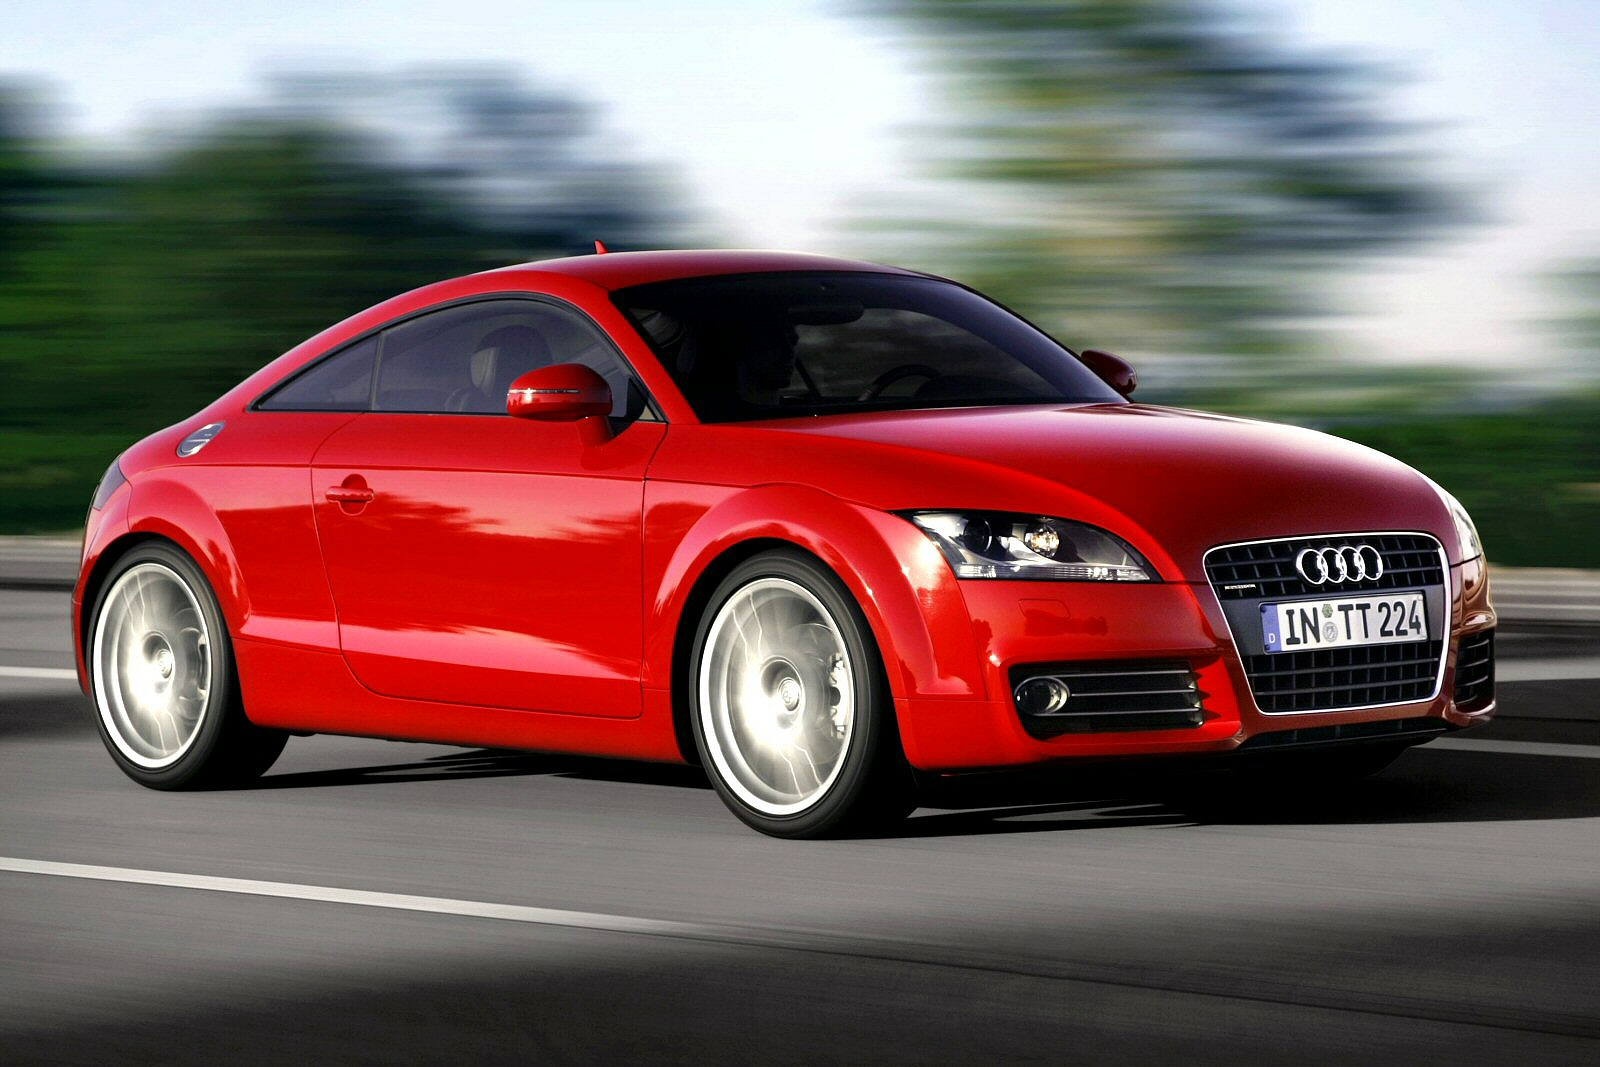 Image two of a Audi TT 2.0 TDI quattro